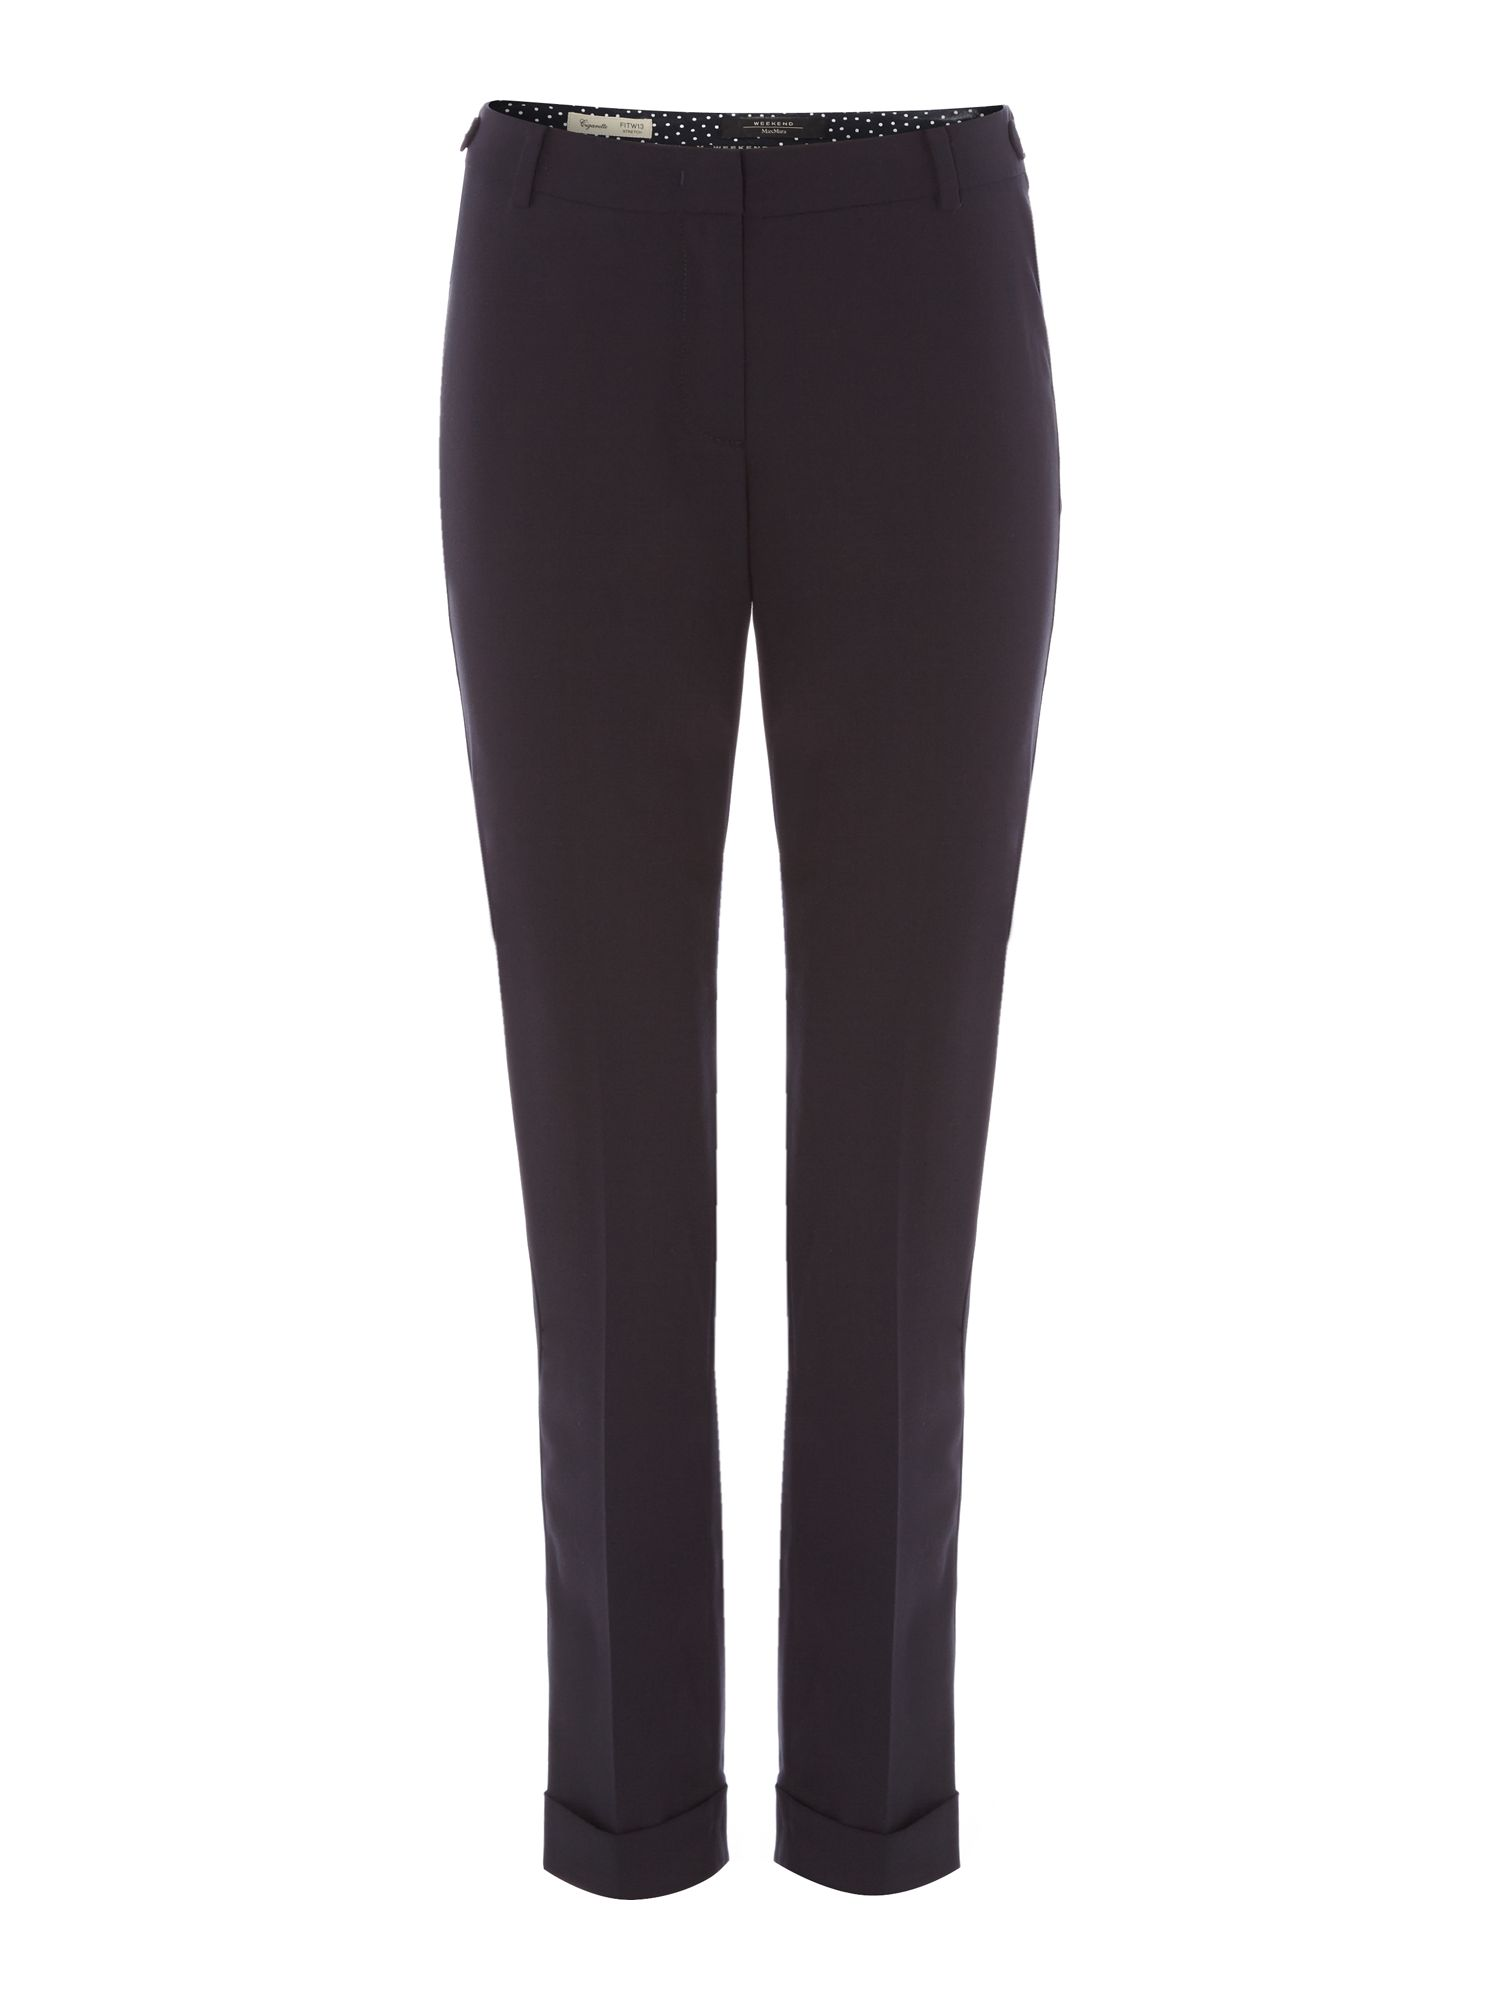 Dionea pleated wool pant